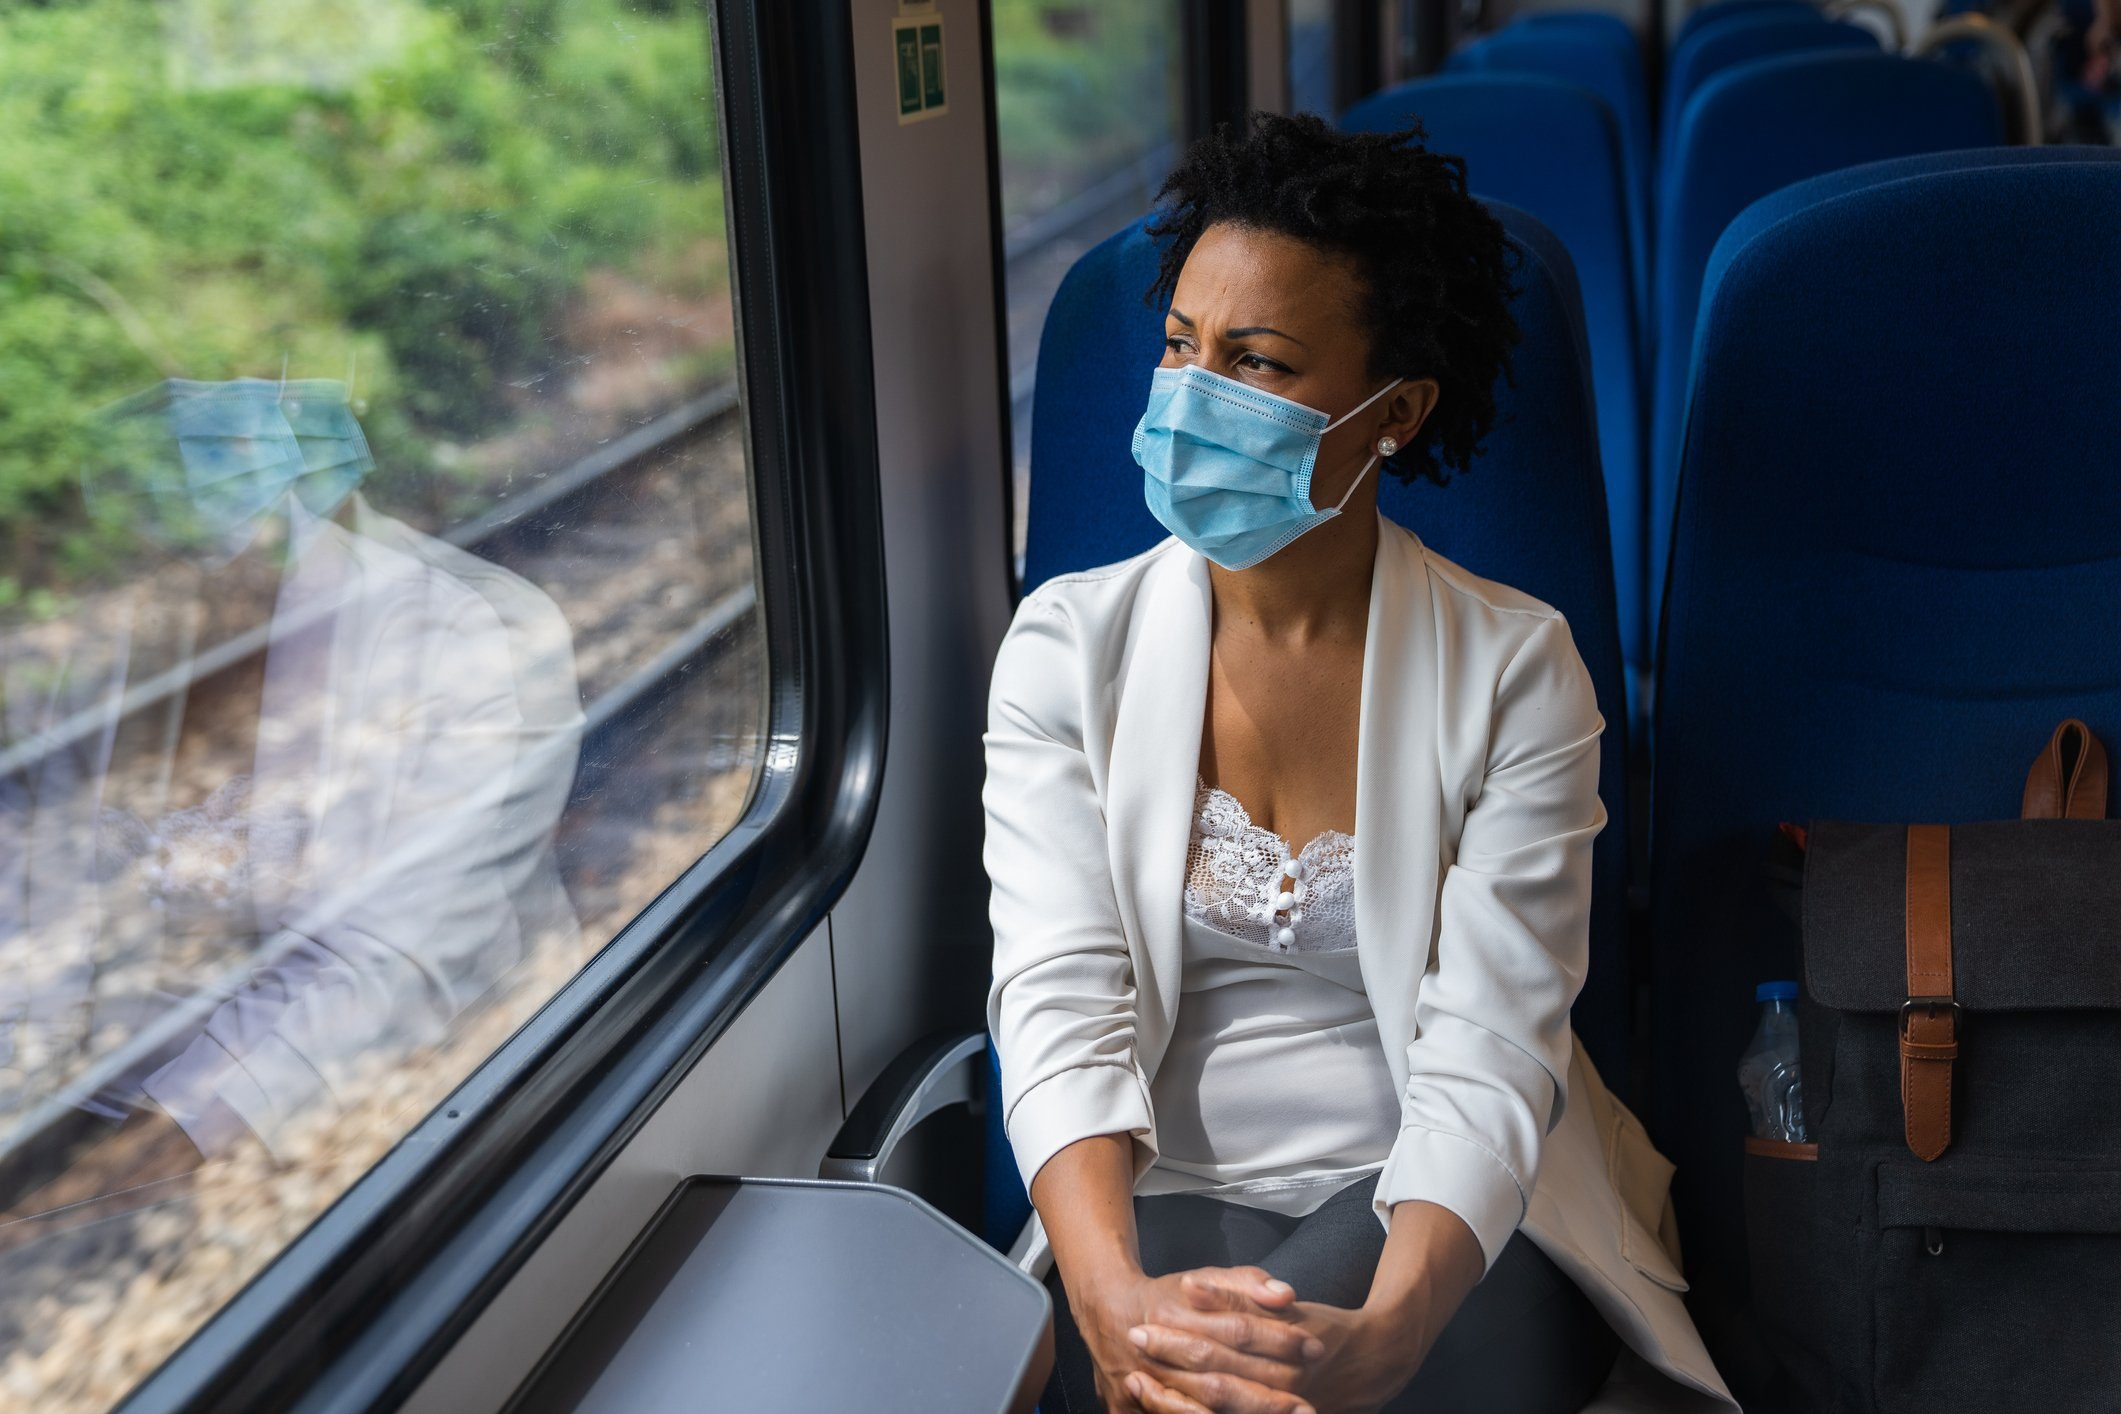 woman sitting on a train looking out the window wearing a face mask